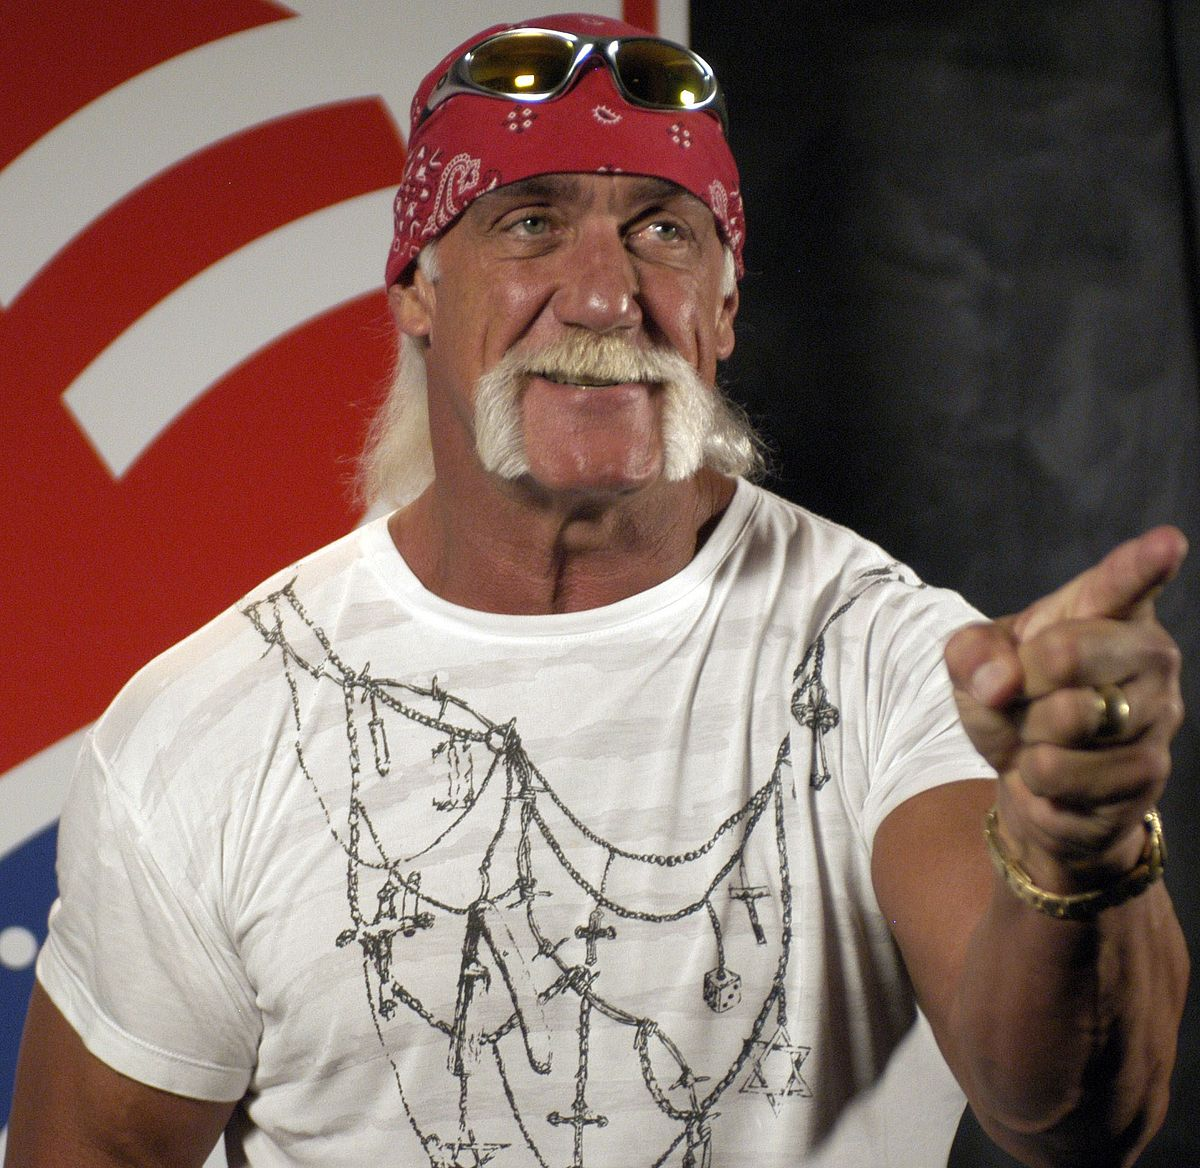 Happy Birthday to WWE Legend and Hall of Famer Hulk Hogan